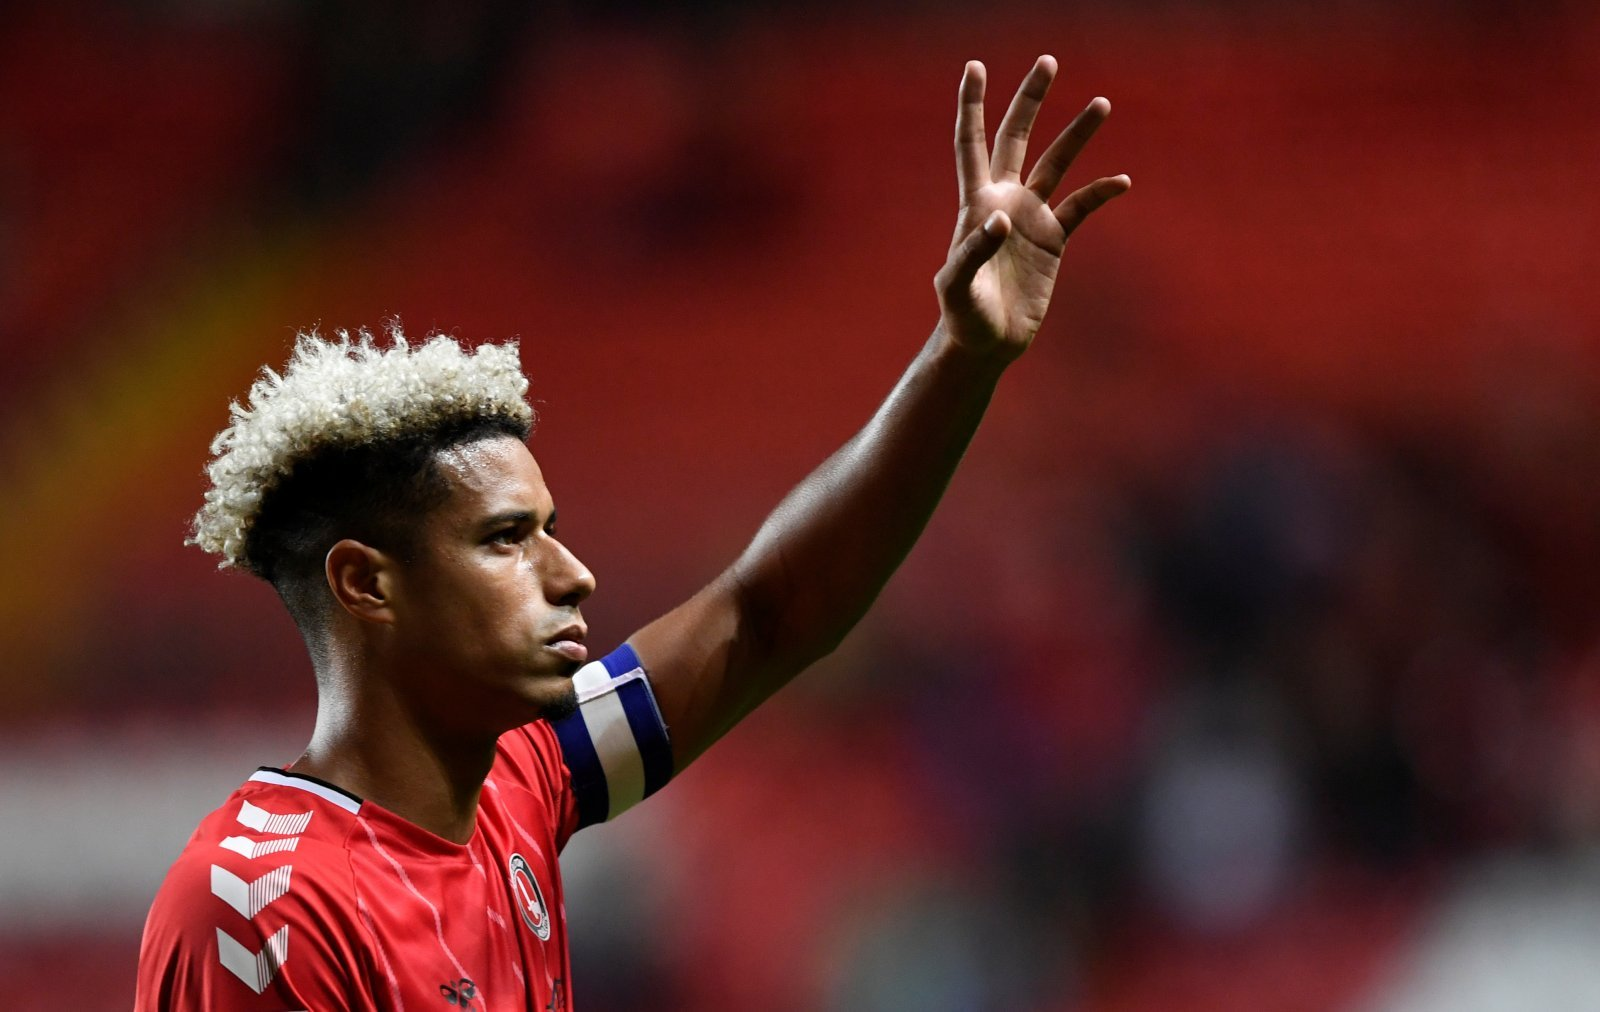 Charlton Athletic: Hanging on to Lyle Taylor 'impossible', says Bowyer